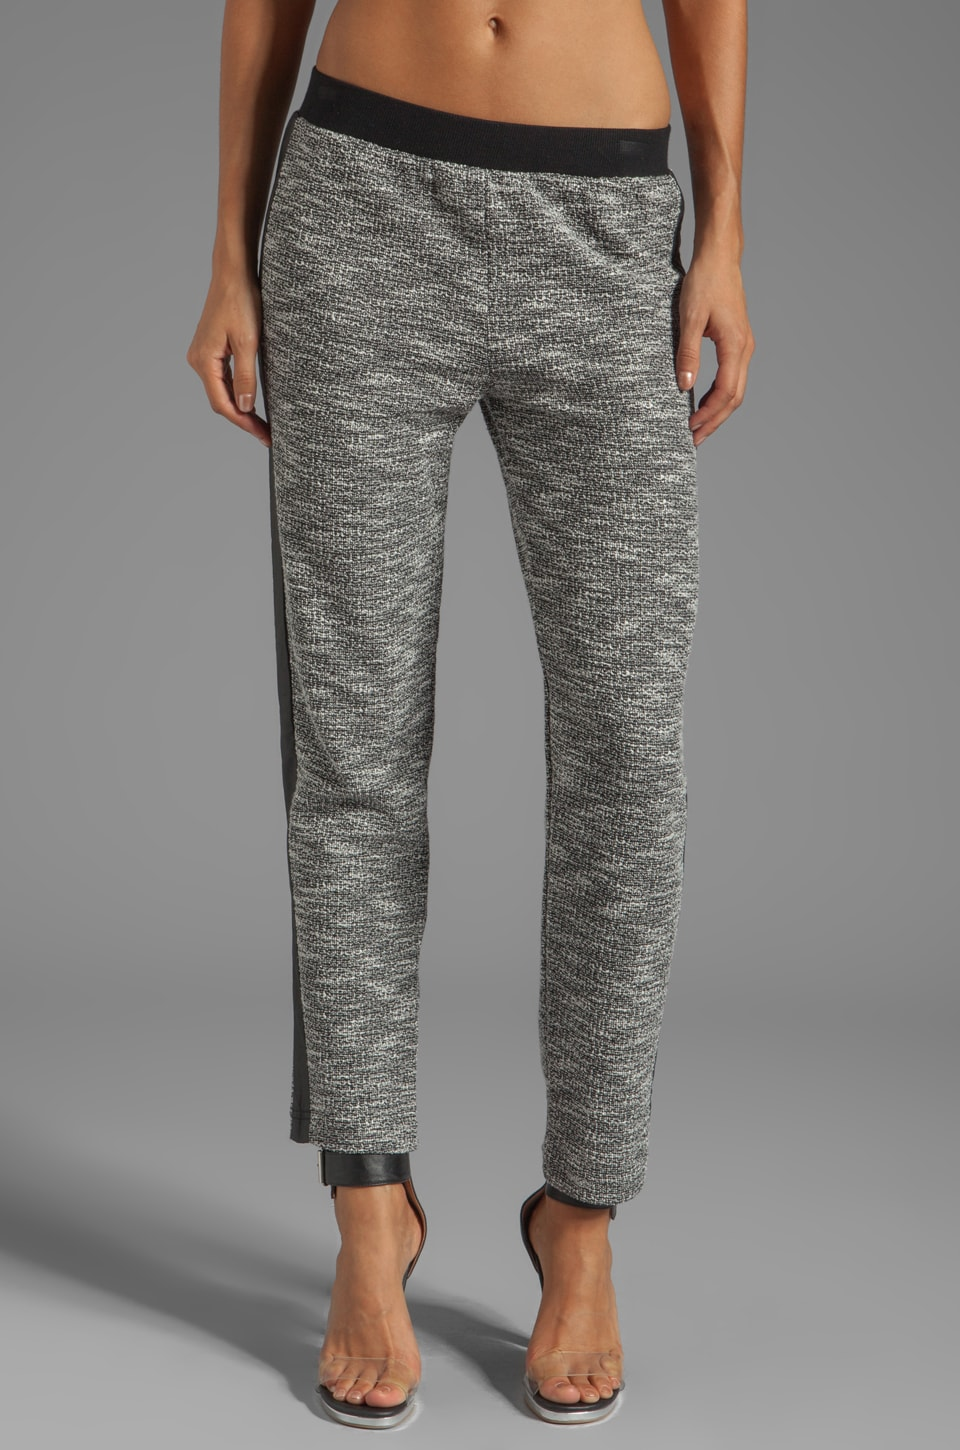 Lanston Tweed Pant in Pepper